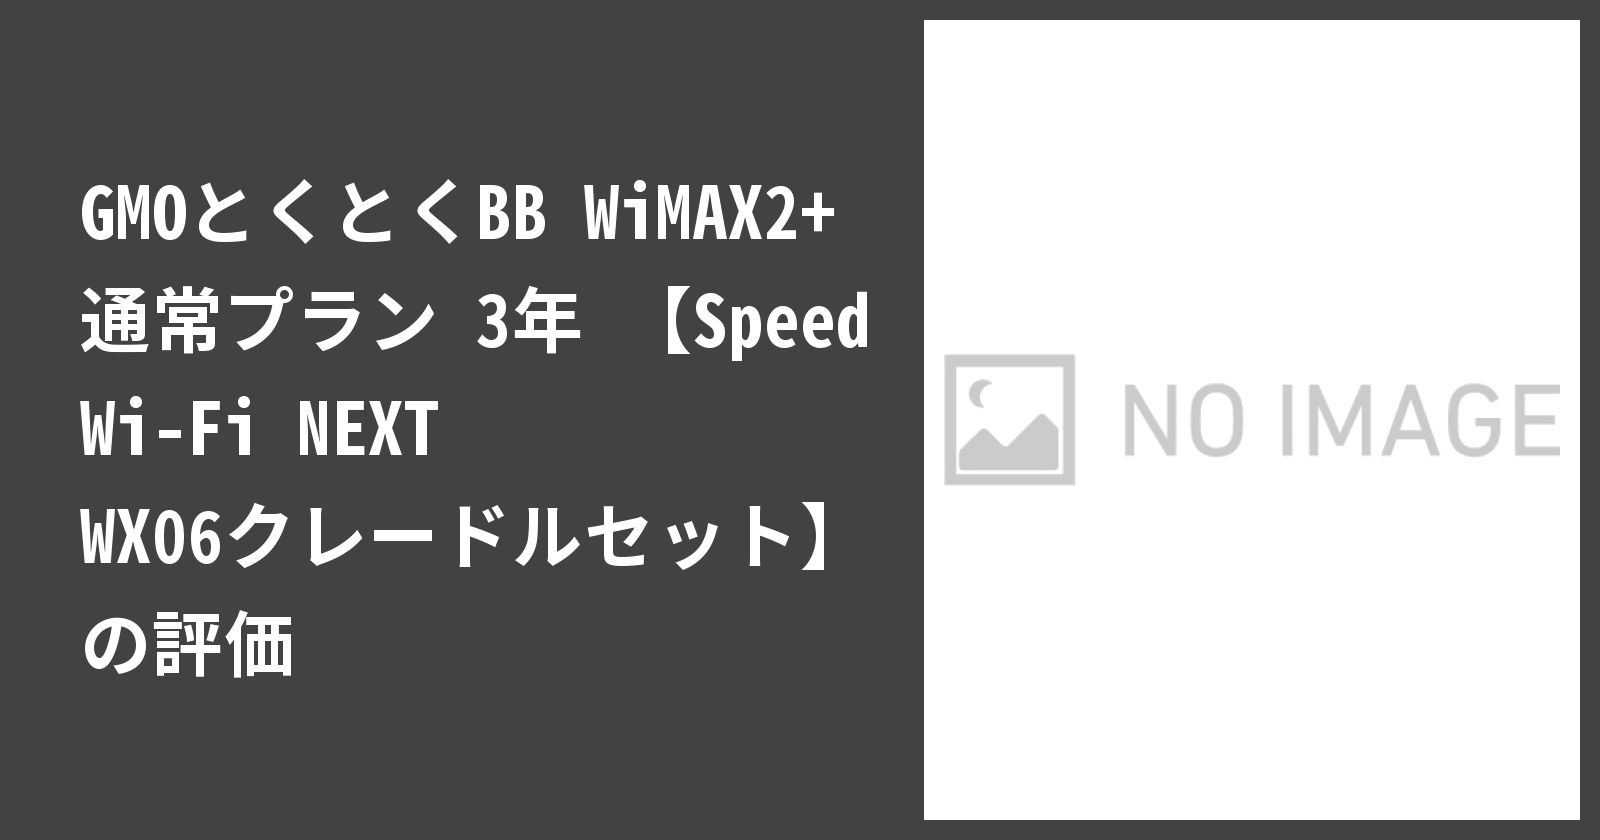 GMOとくとくBB WiMAX2+ 通常プラン 3年 【Speed Wi-Fi NEXT WX06クレードルセット】を徹底評価